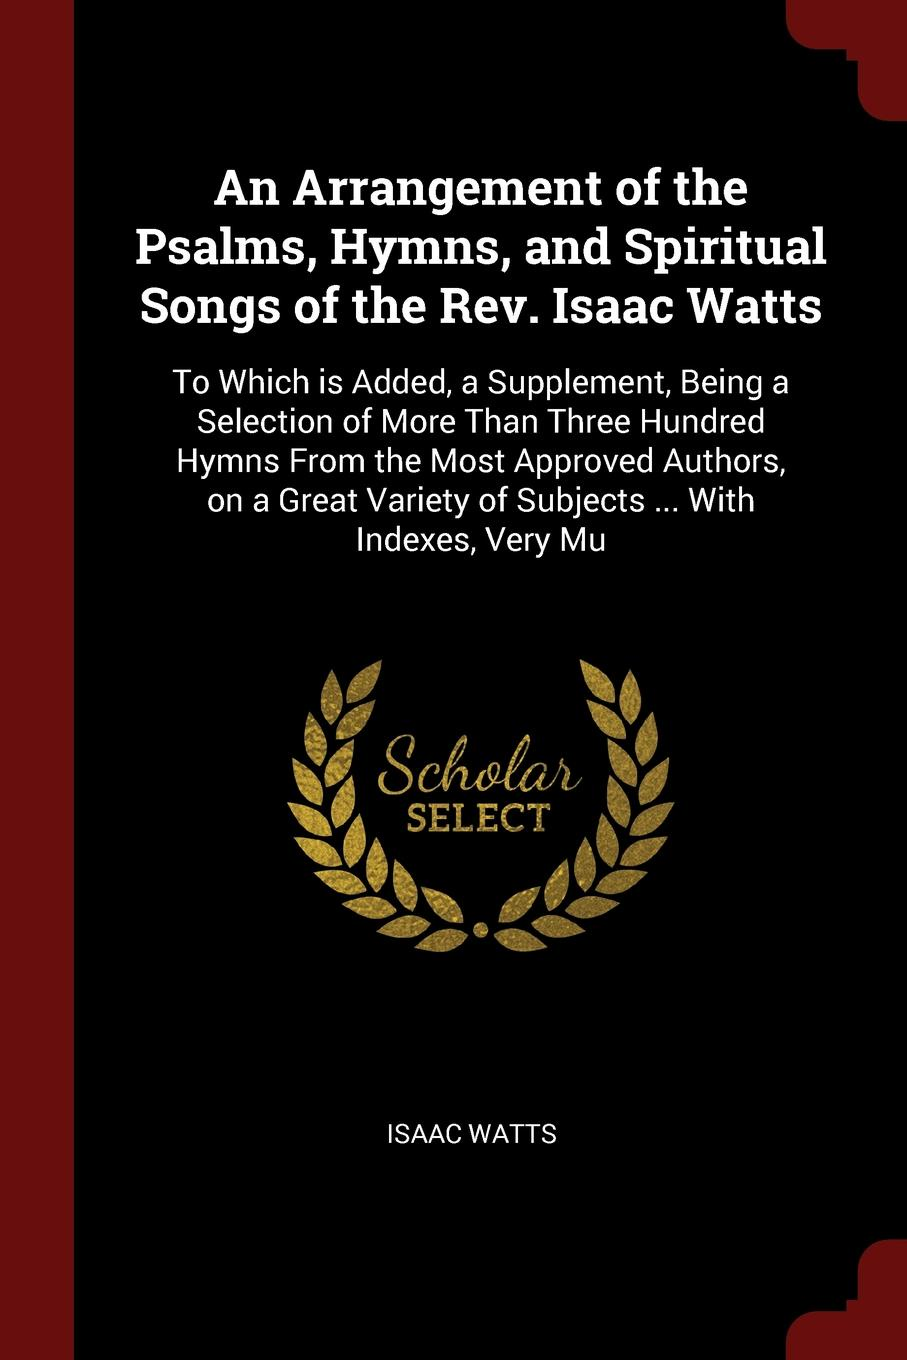 Фото - Isaac Watts An Arrangement of the Psalms, Hymns, and Spiritual Songs of the Rev. Isaac Watts. To Which is Added, a Supplement, Being a Selection of More Than Three Hundred Hymns From the Most Approved Authors, on a Great Variety of Subjects ... With Indexes, ... william parkinson a selection of hymns and spiritual songs